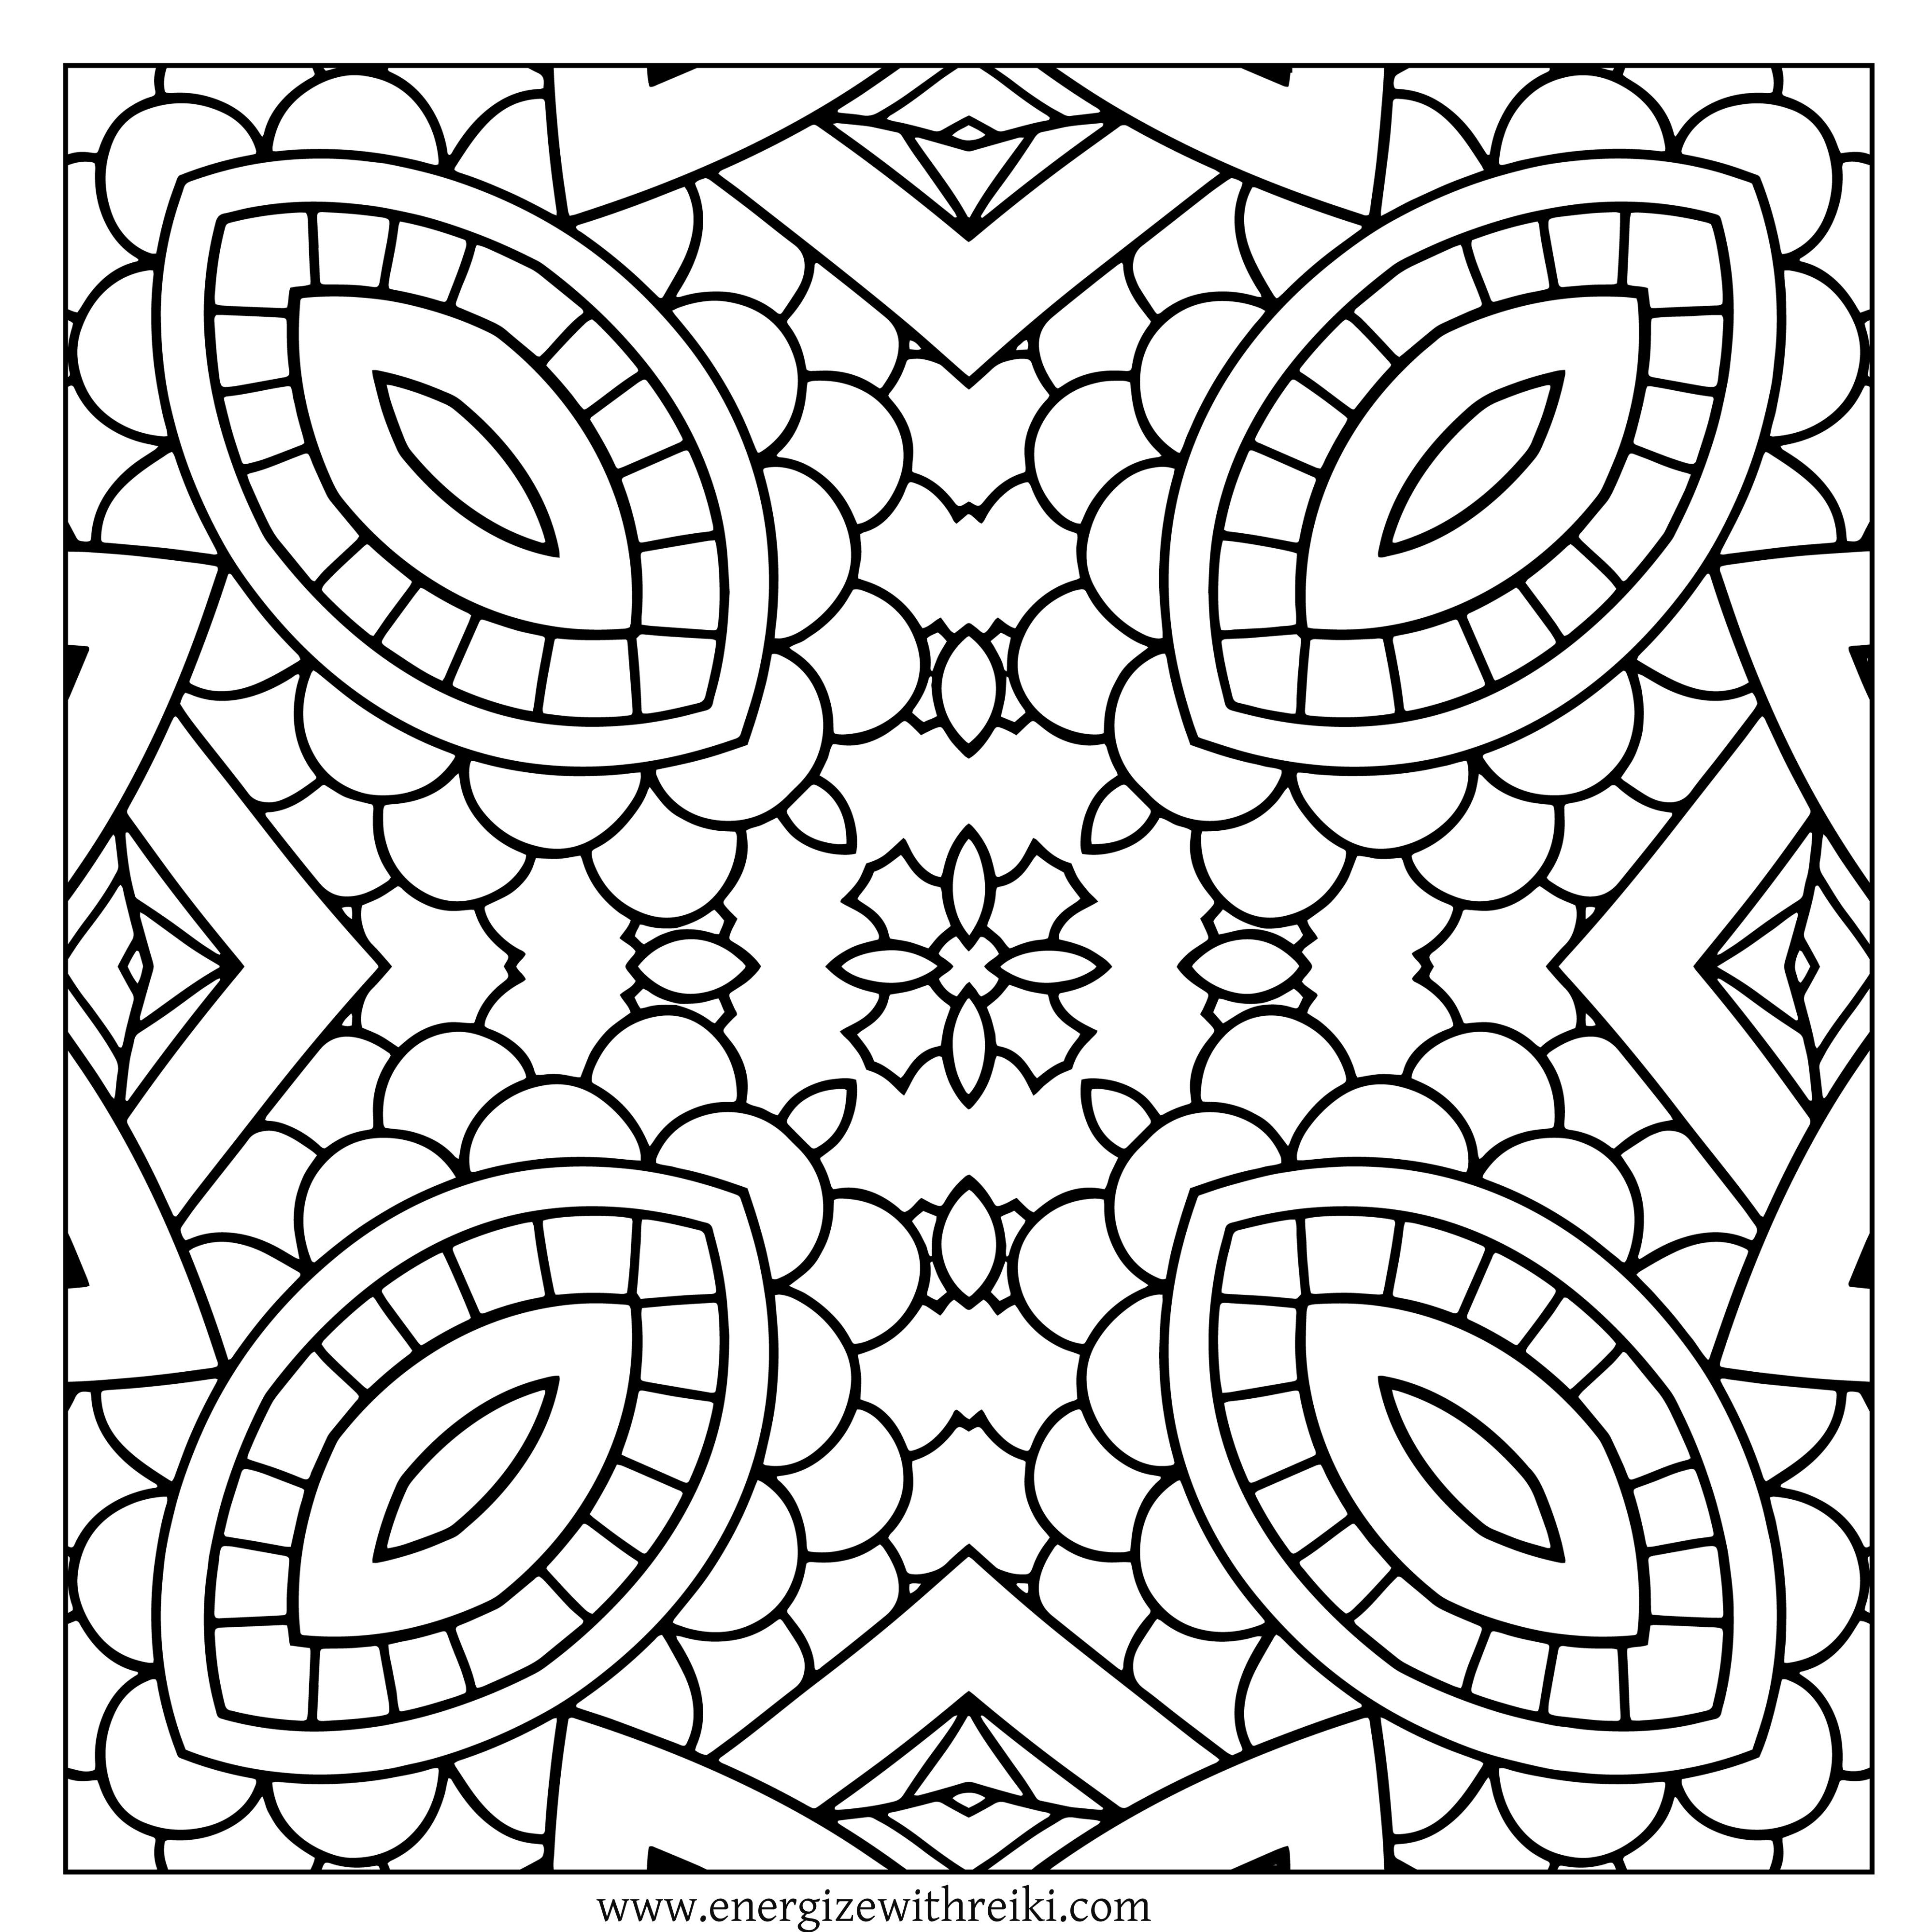 Christmas Kaleidoscope Coloring Pages With Diamond Shaped Eyes FREE Adult Page For You To